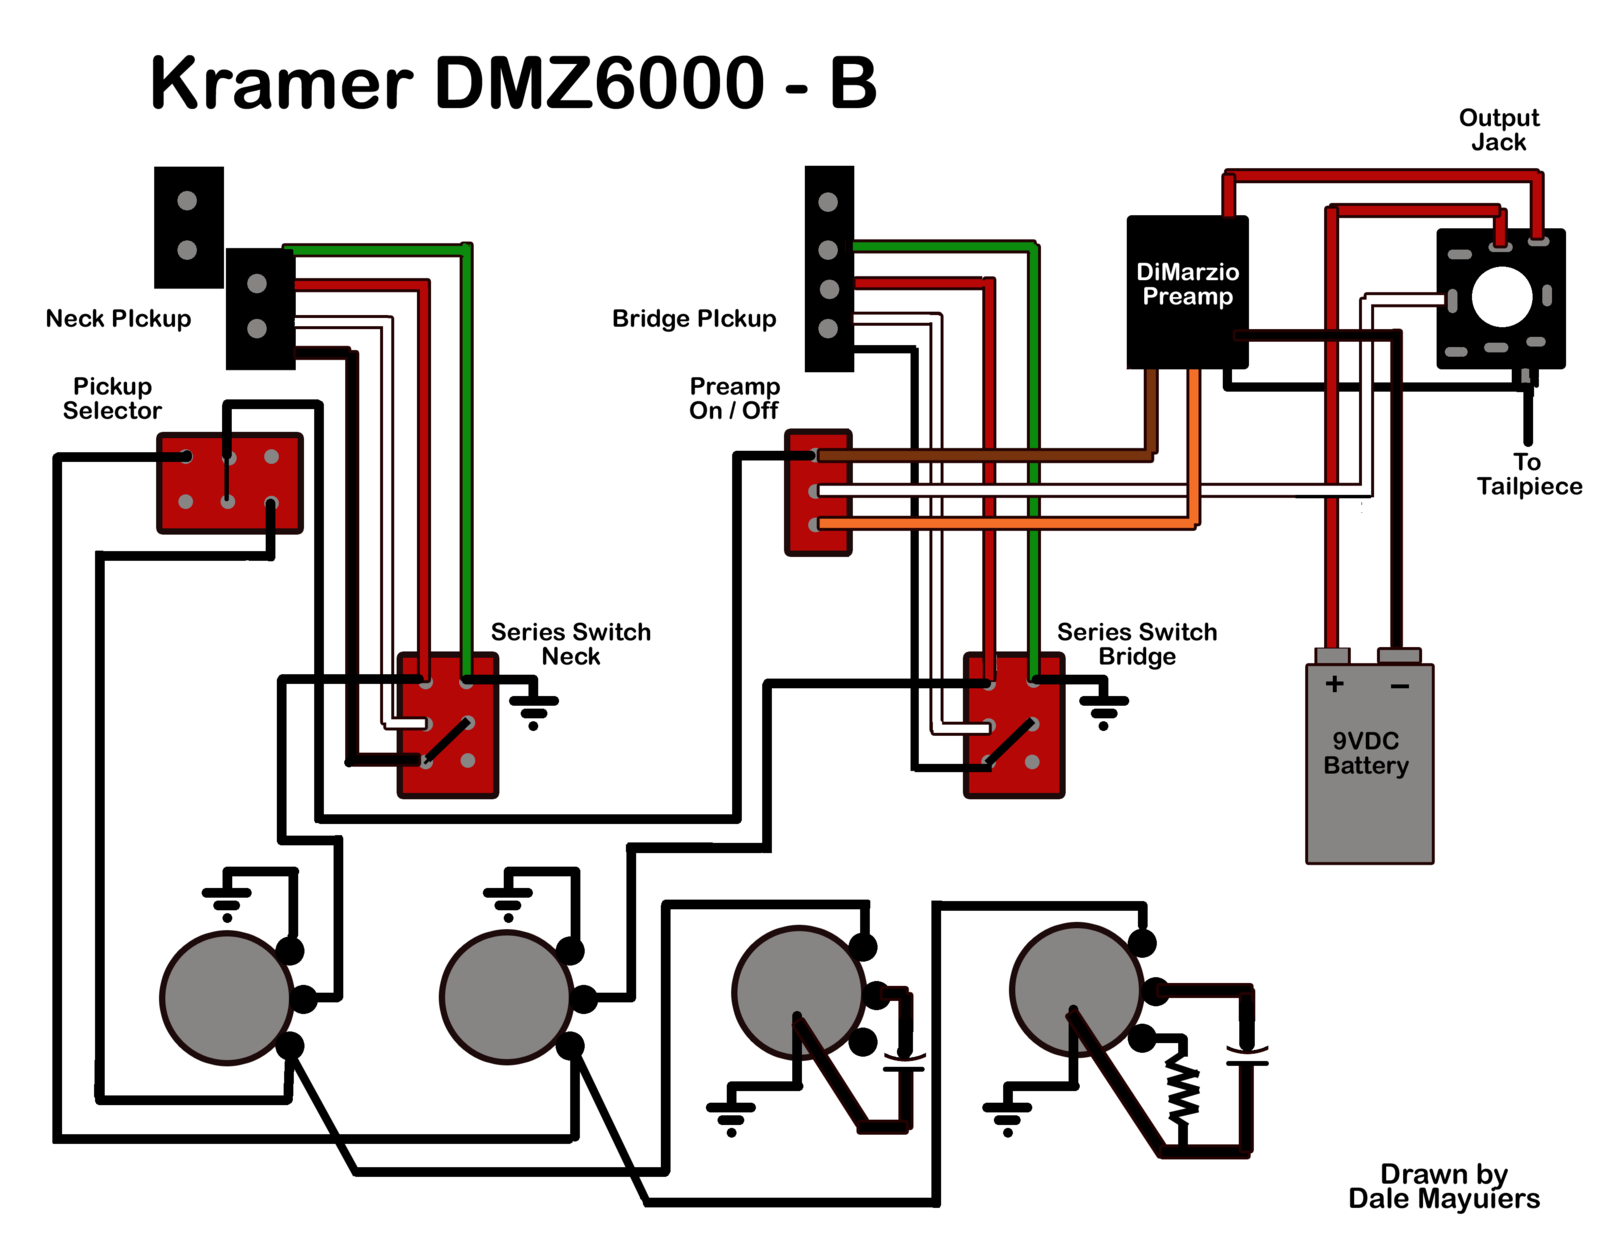 Kramer dmz6000 wiring diagram with dimarzio preamp talkbass dmz6000 wiring diagramg asfbconference2016 Image collections